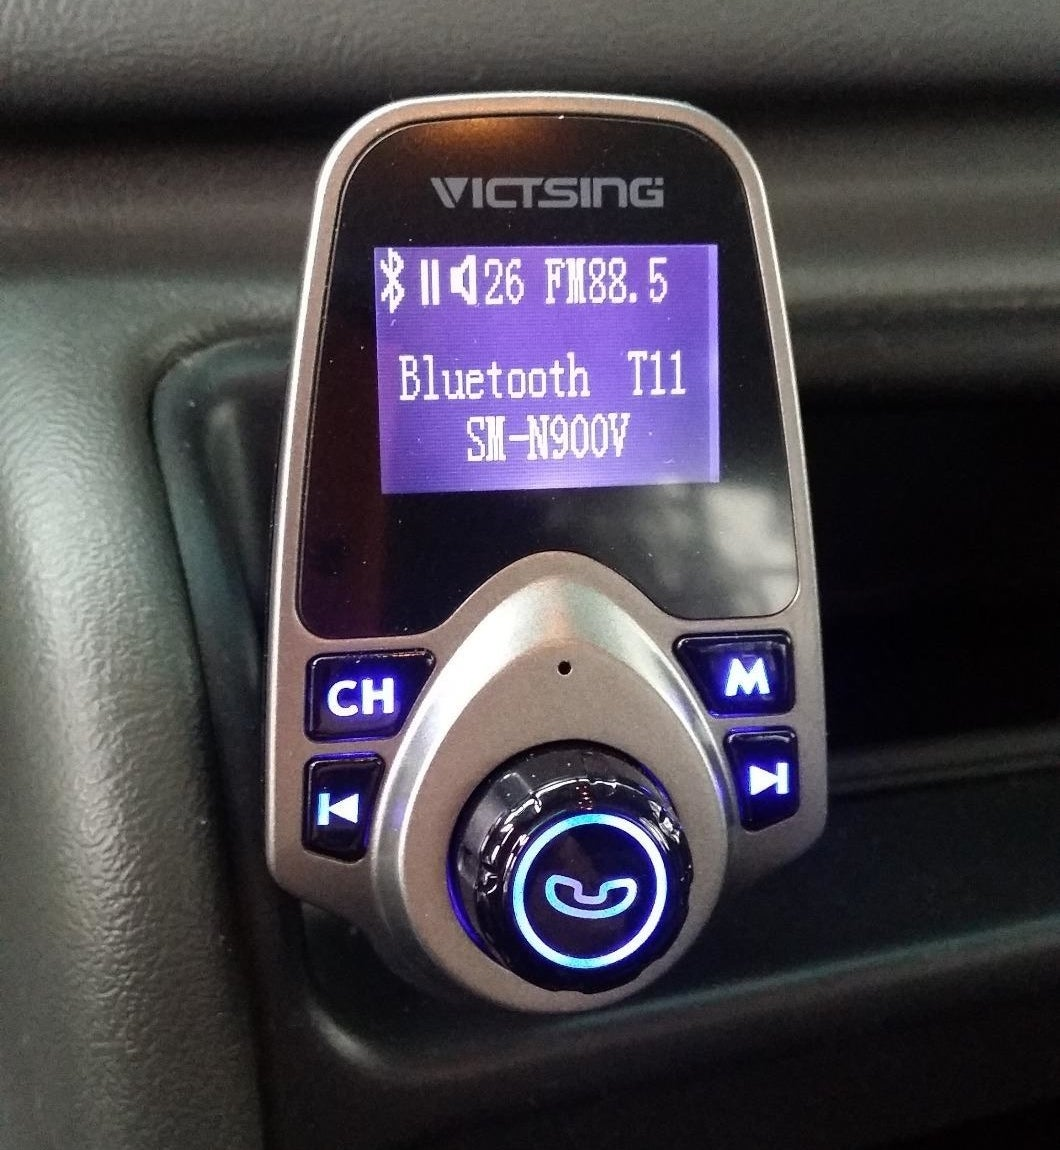 The adapter installed in a Reviewer's car